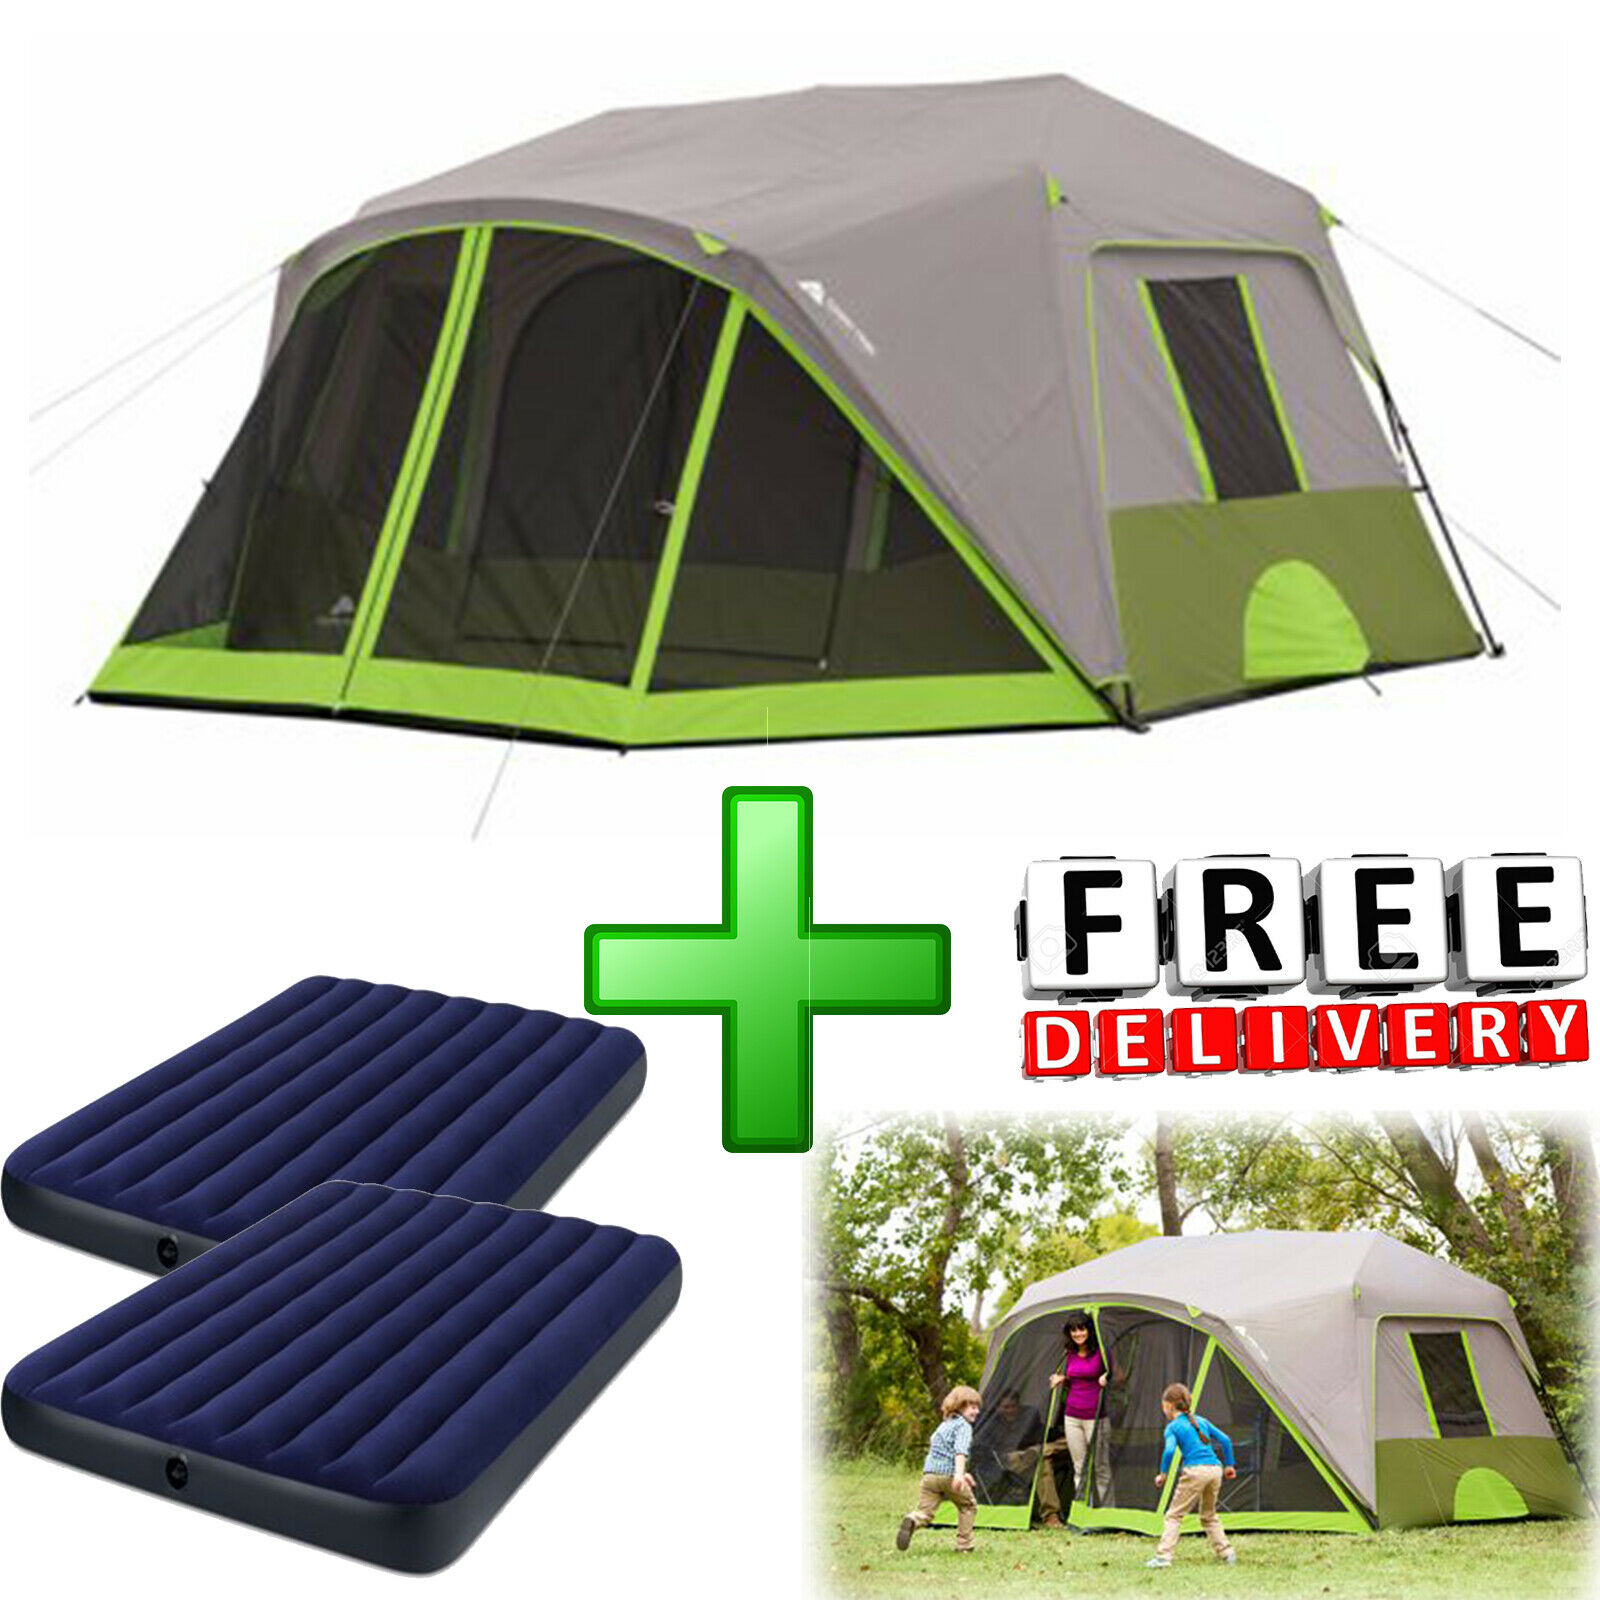 Camping Tent 8 Person Cabin 2 Queen Airbeds  Outdoor Family Hiking Shelter  honest service